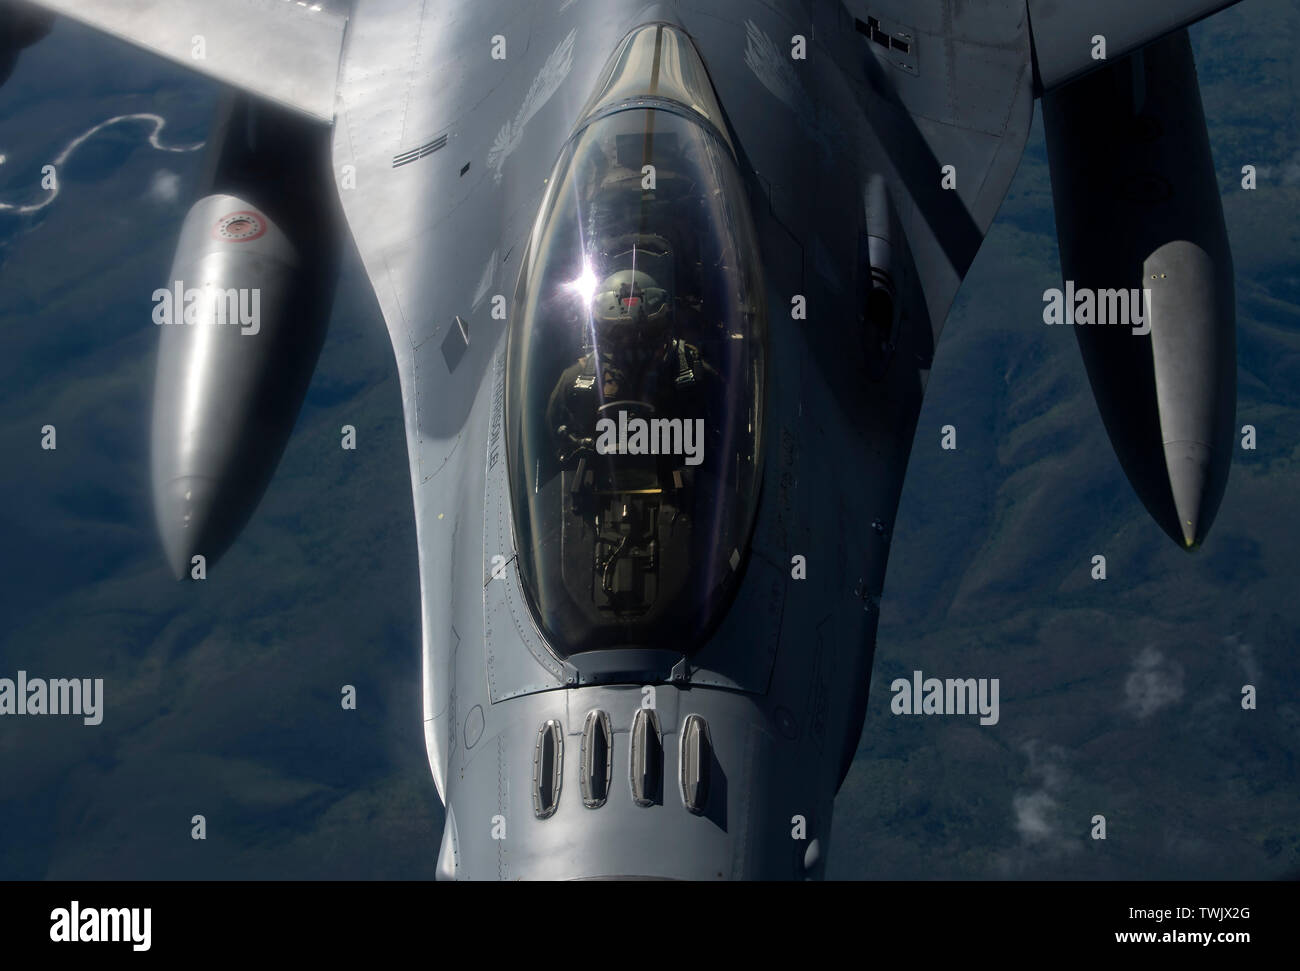 A U.S. Air Force F-16 Fighting Falcon pilot from the 13th Fighter Squadron, Misawa Air Base, Japan, receives fuel from a KC-135 Stratotanker during RED FLAG-Alaska 19-2 near Eielson Air Force Base, Alaska, June 18, 2019. The 13th FS is one of various units, to include NATO partners, participating in exercise RF-A. The KC-135 is assigned to the 909th Air Refueling Squadron, Kadena Air Base, Japan. Airmen from Misawa and Kadena Air Base joined more than 2000 participants for the Pacific Air Forces-sponsored exercise, which aims to improve interoperability between U.S. and international partners. - Stock Image